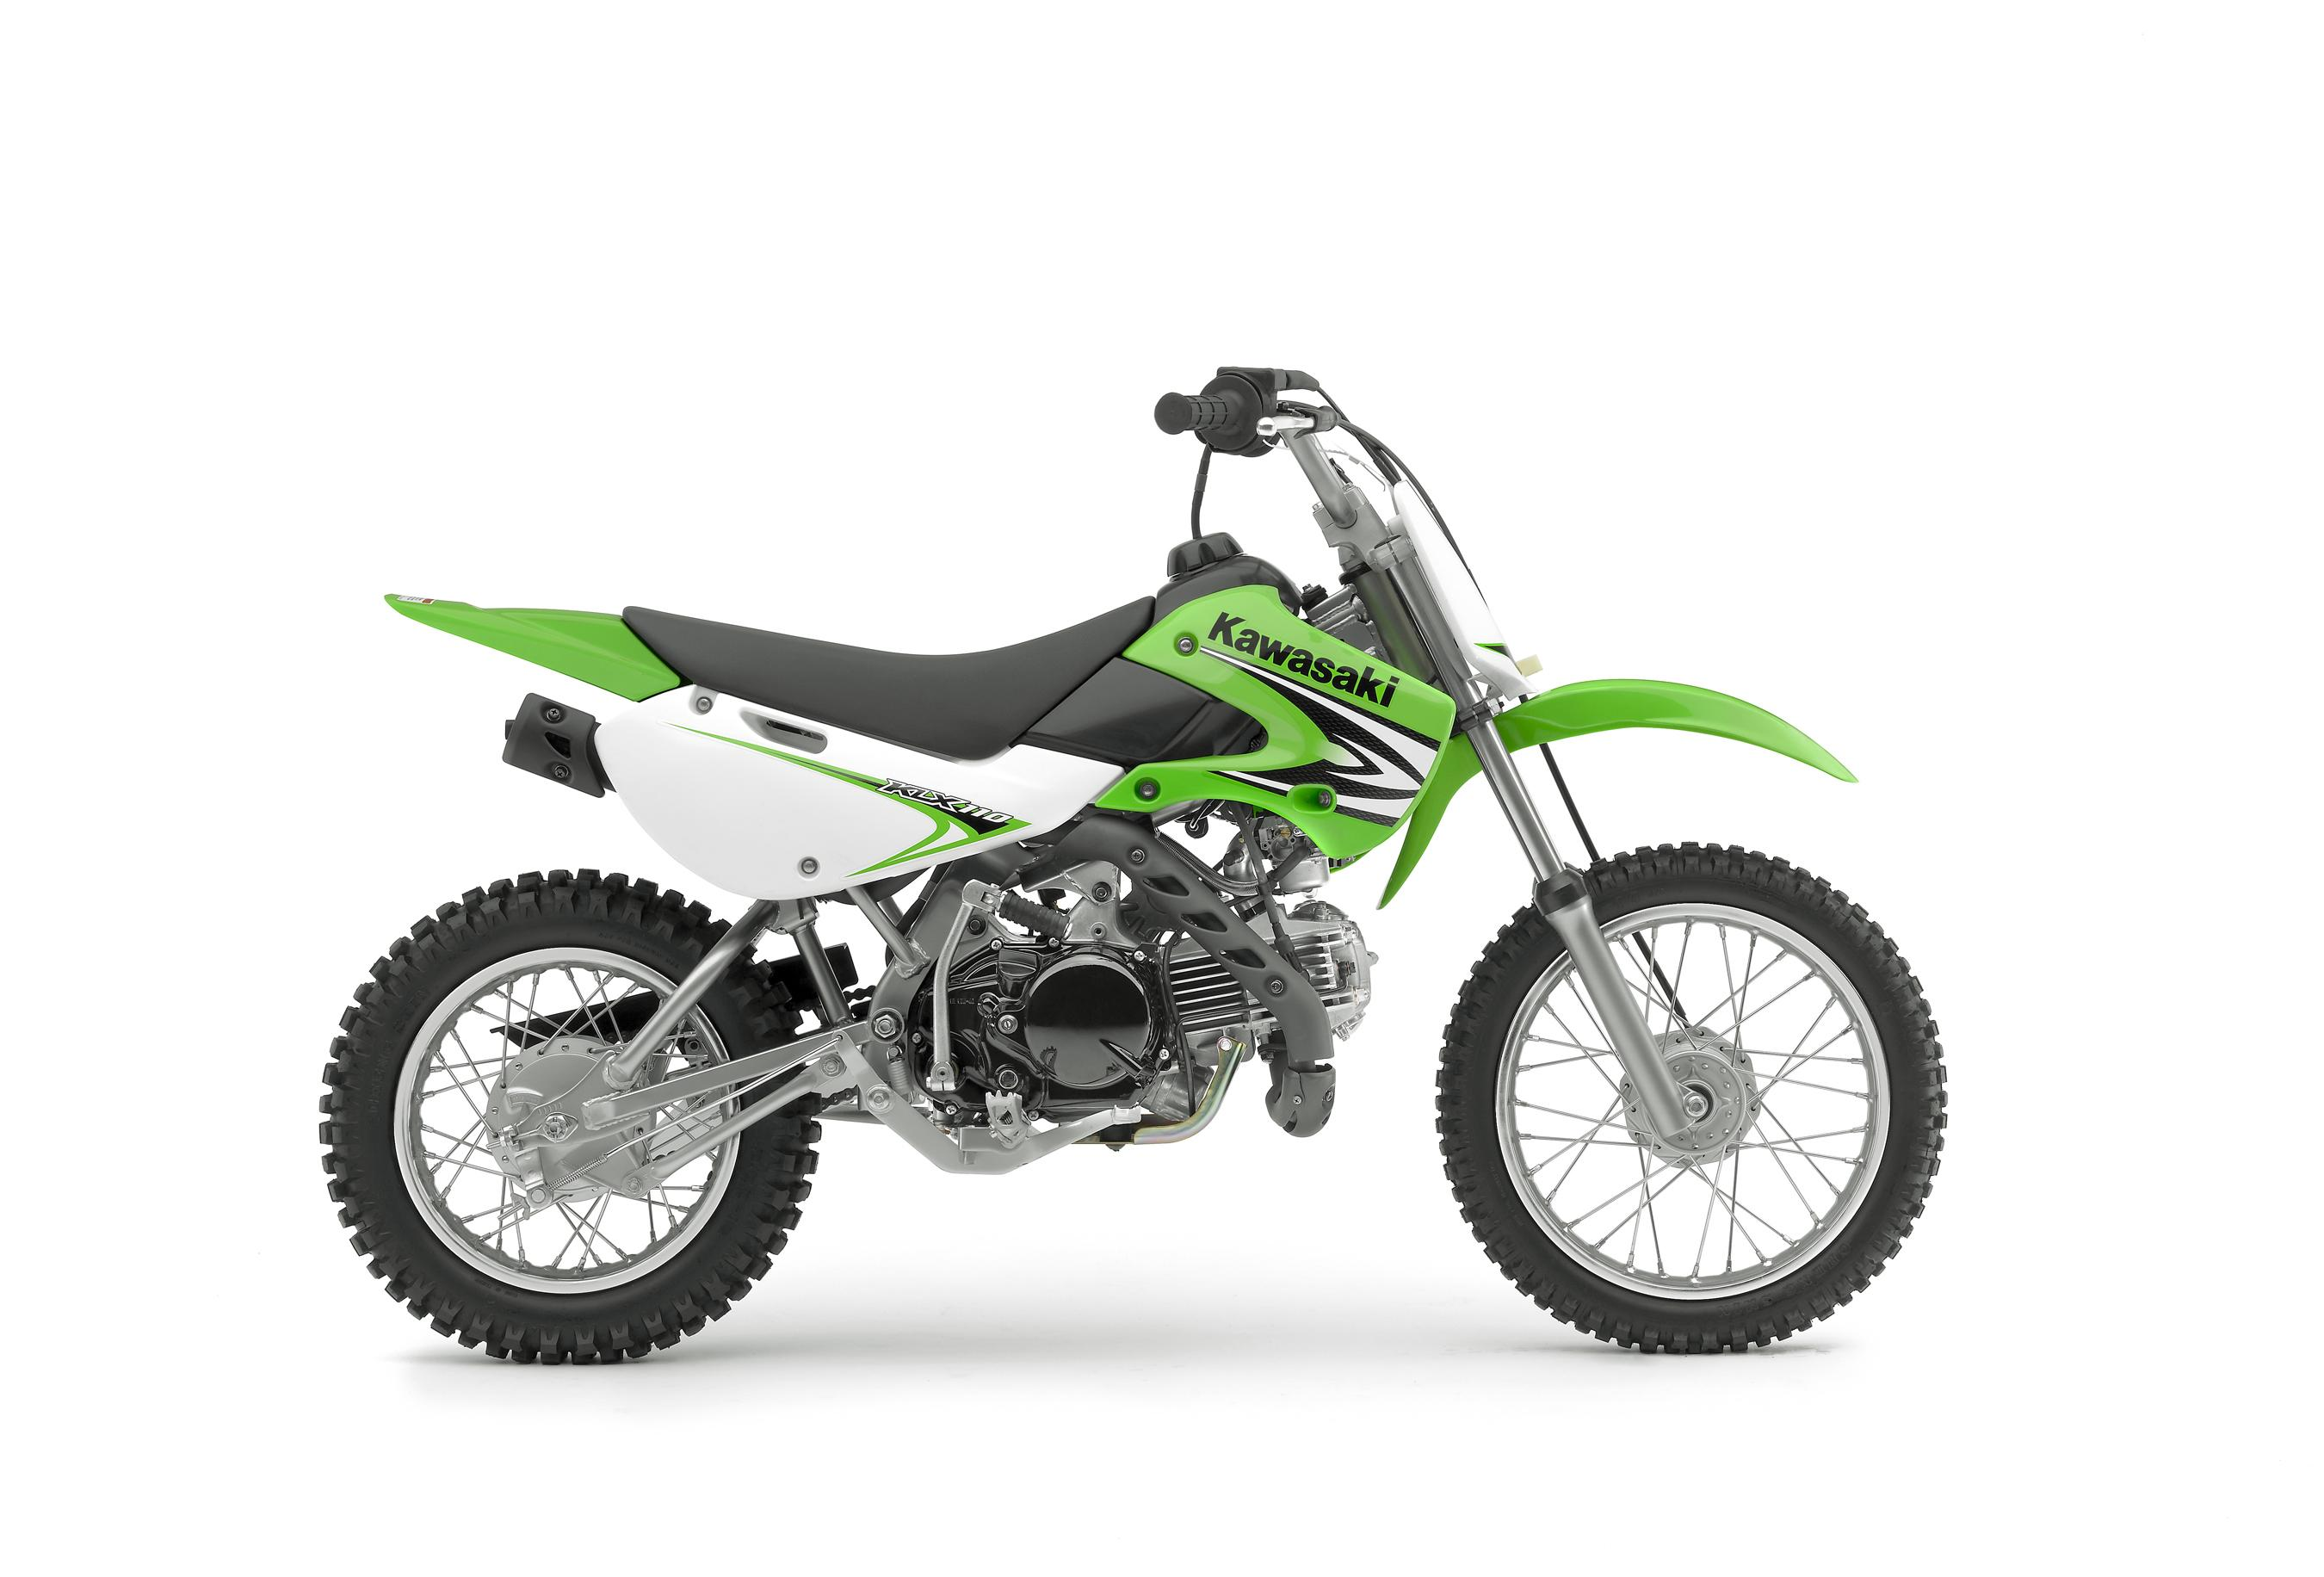 2008 Kawasaki KLX110 | Top Speed